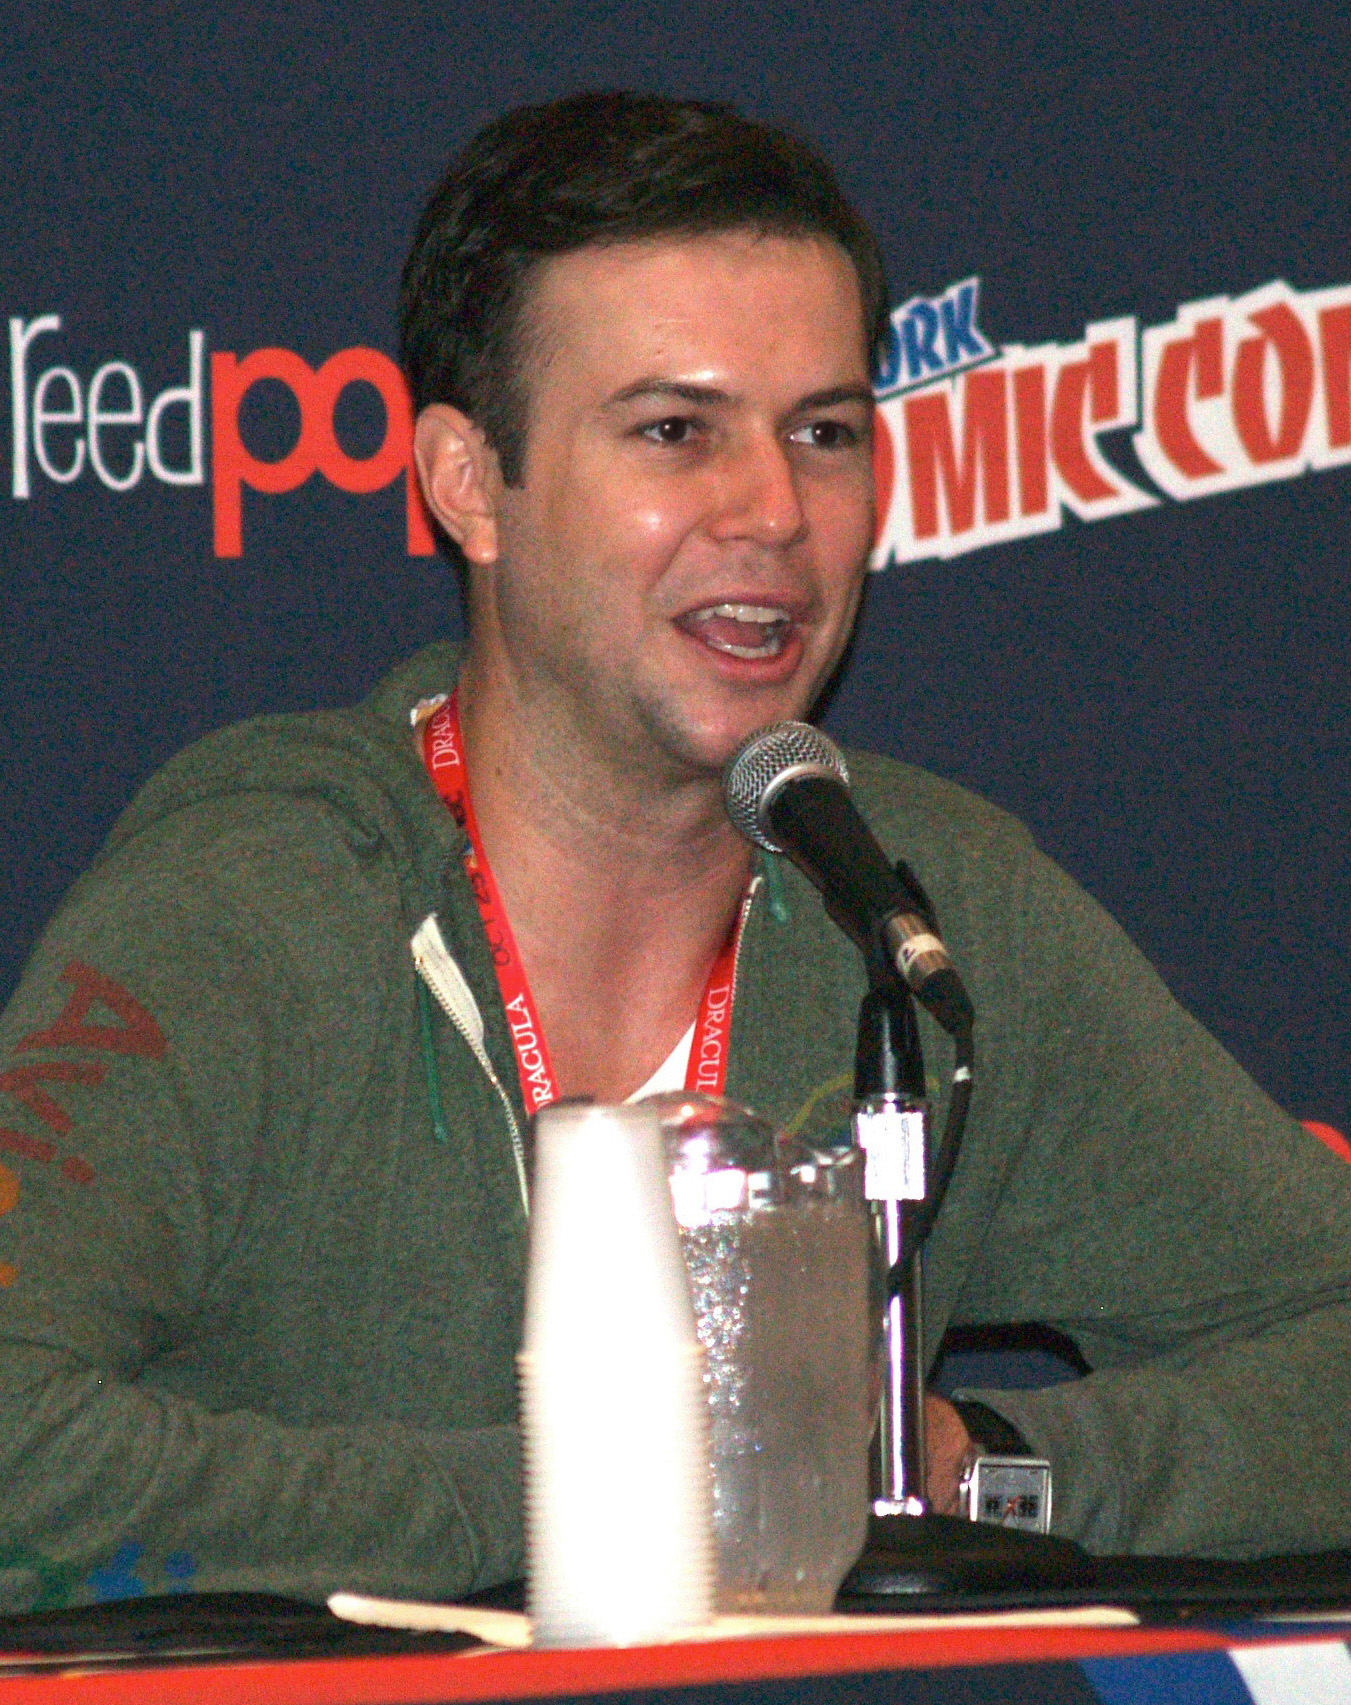 The 36-year old son of father (?) and mother(?) Taran Killam in 2018 photo. Taran Killam earned a  million dollar salary - leaving the net worth at 4 million in 2018